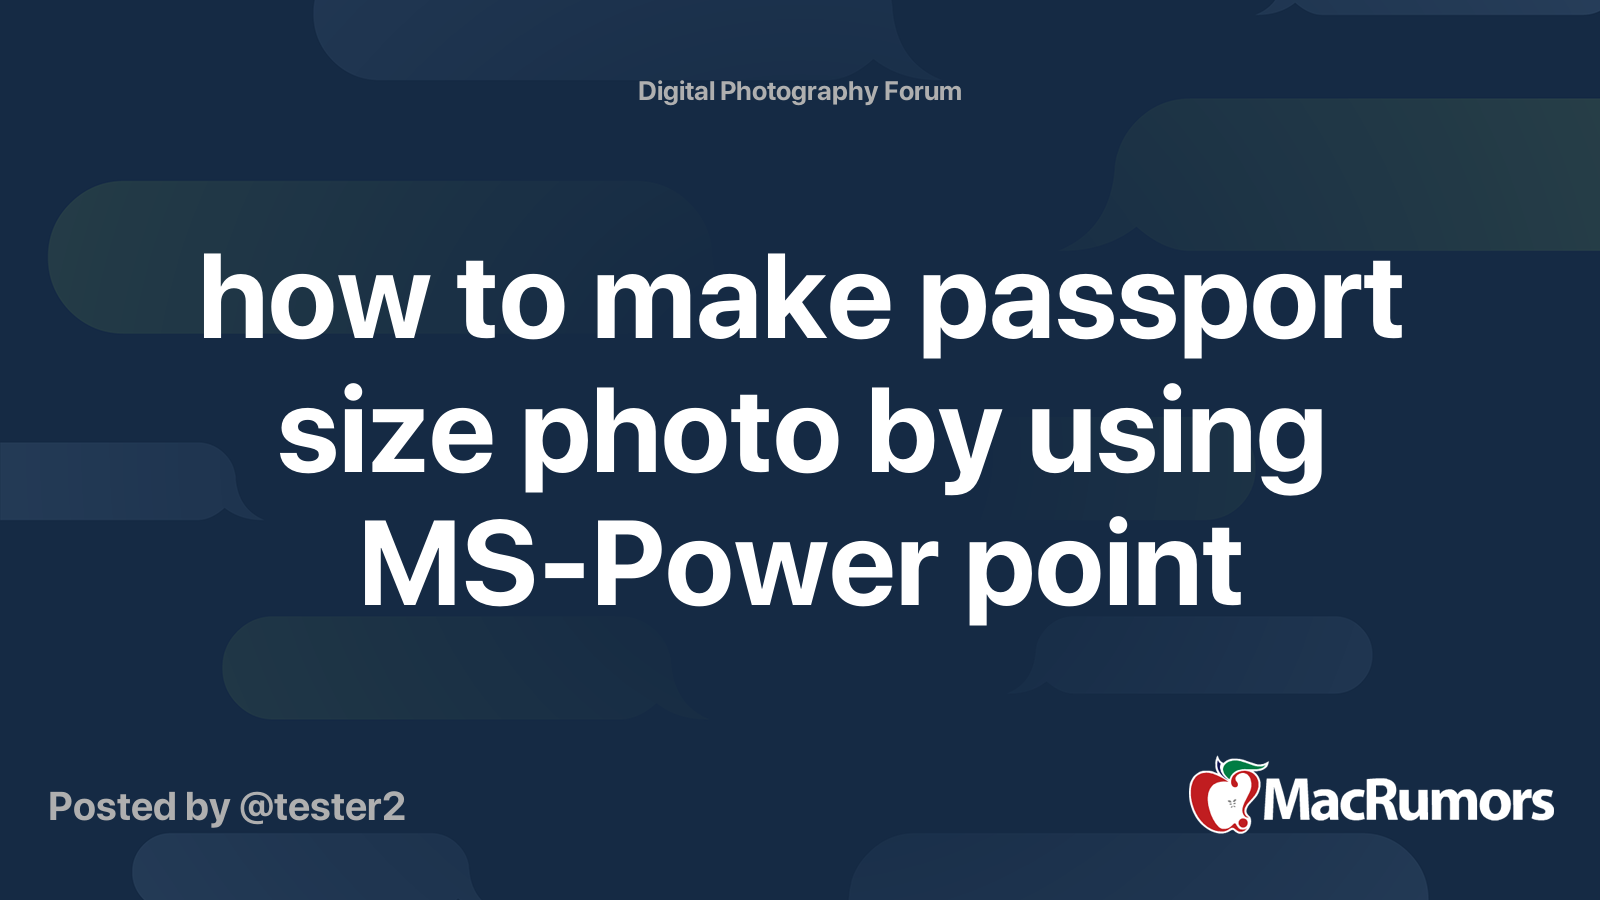 How To Make Passport Size Photo By Using Ms Power Point Macrumors Forums